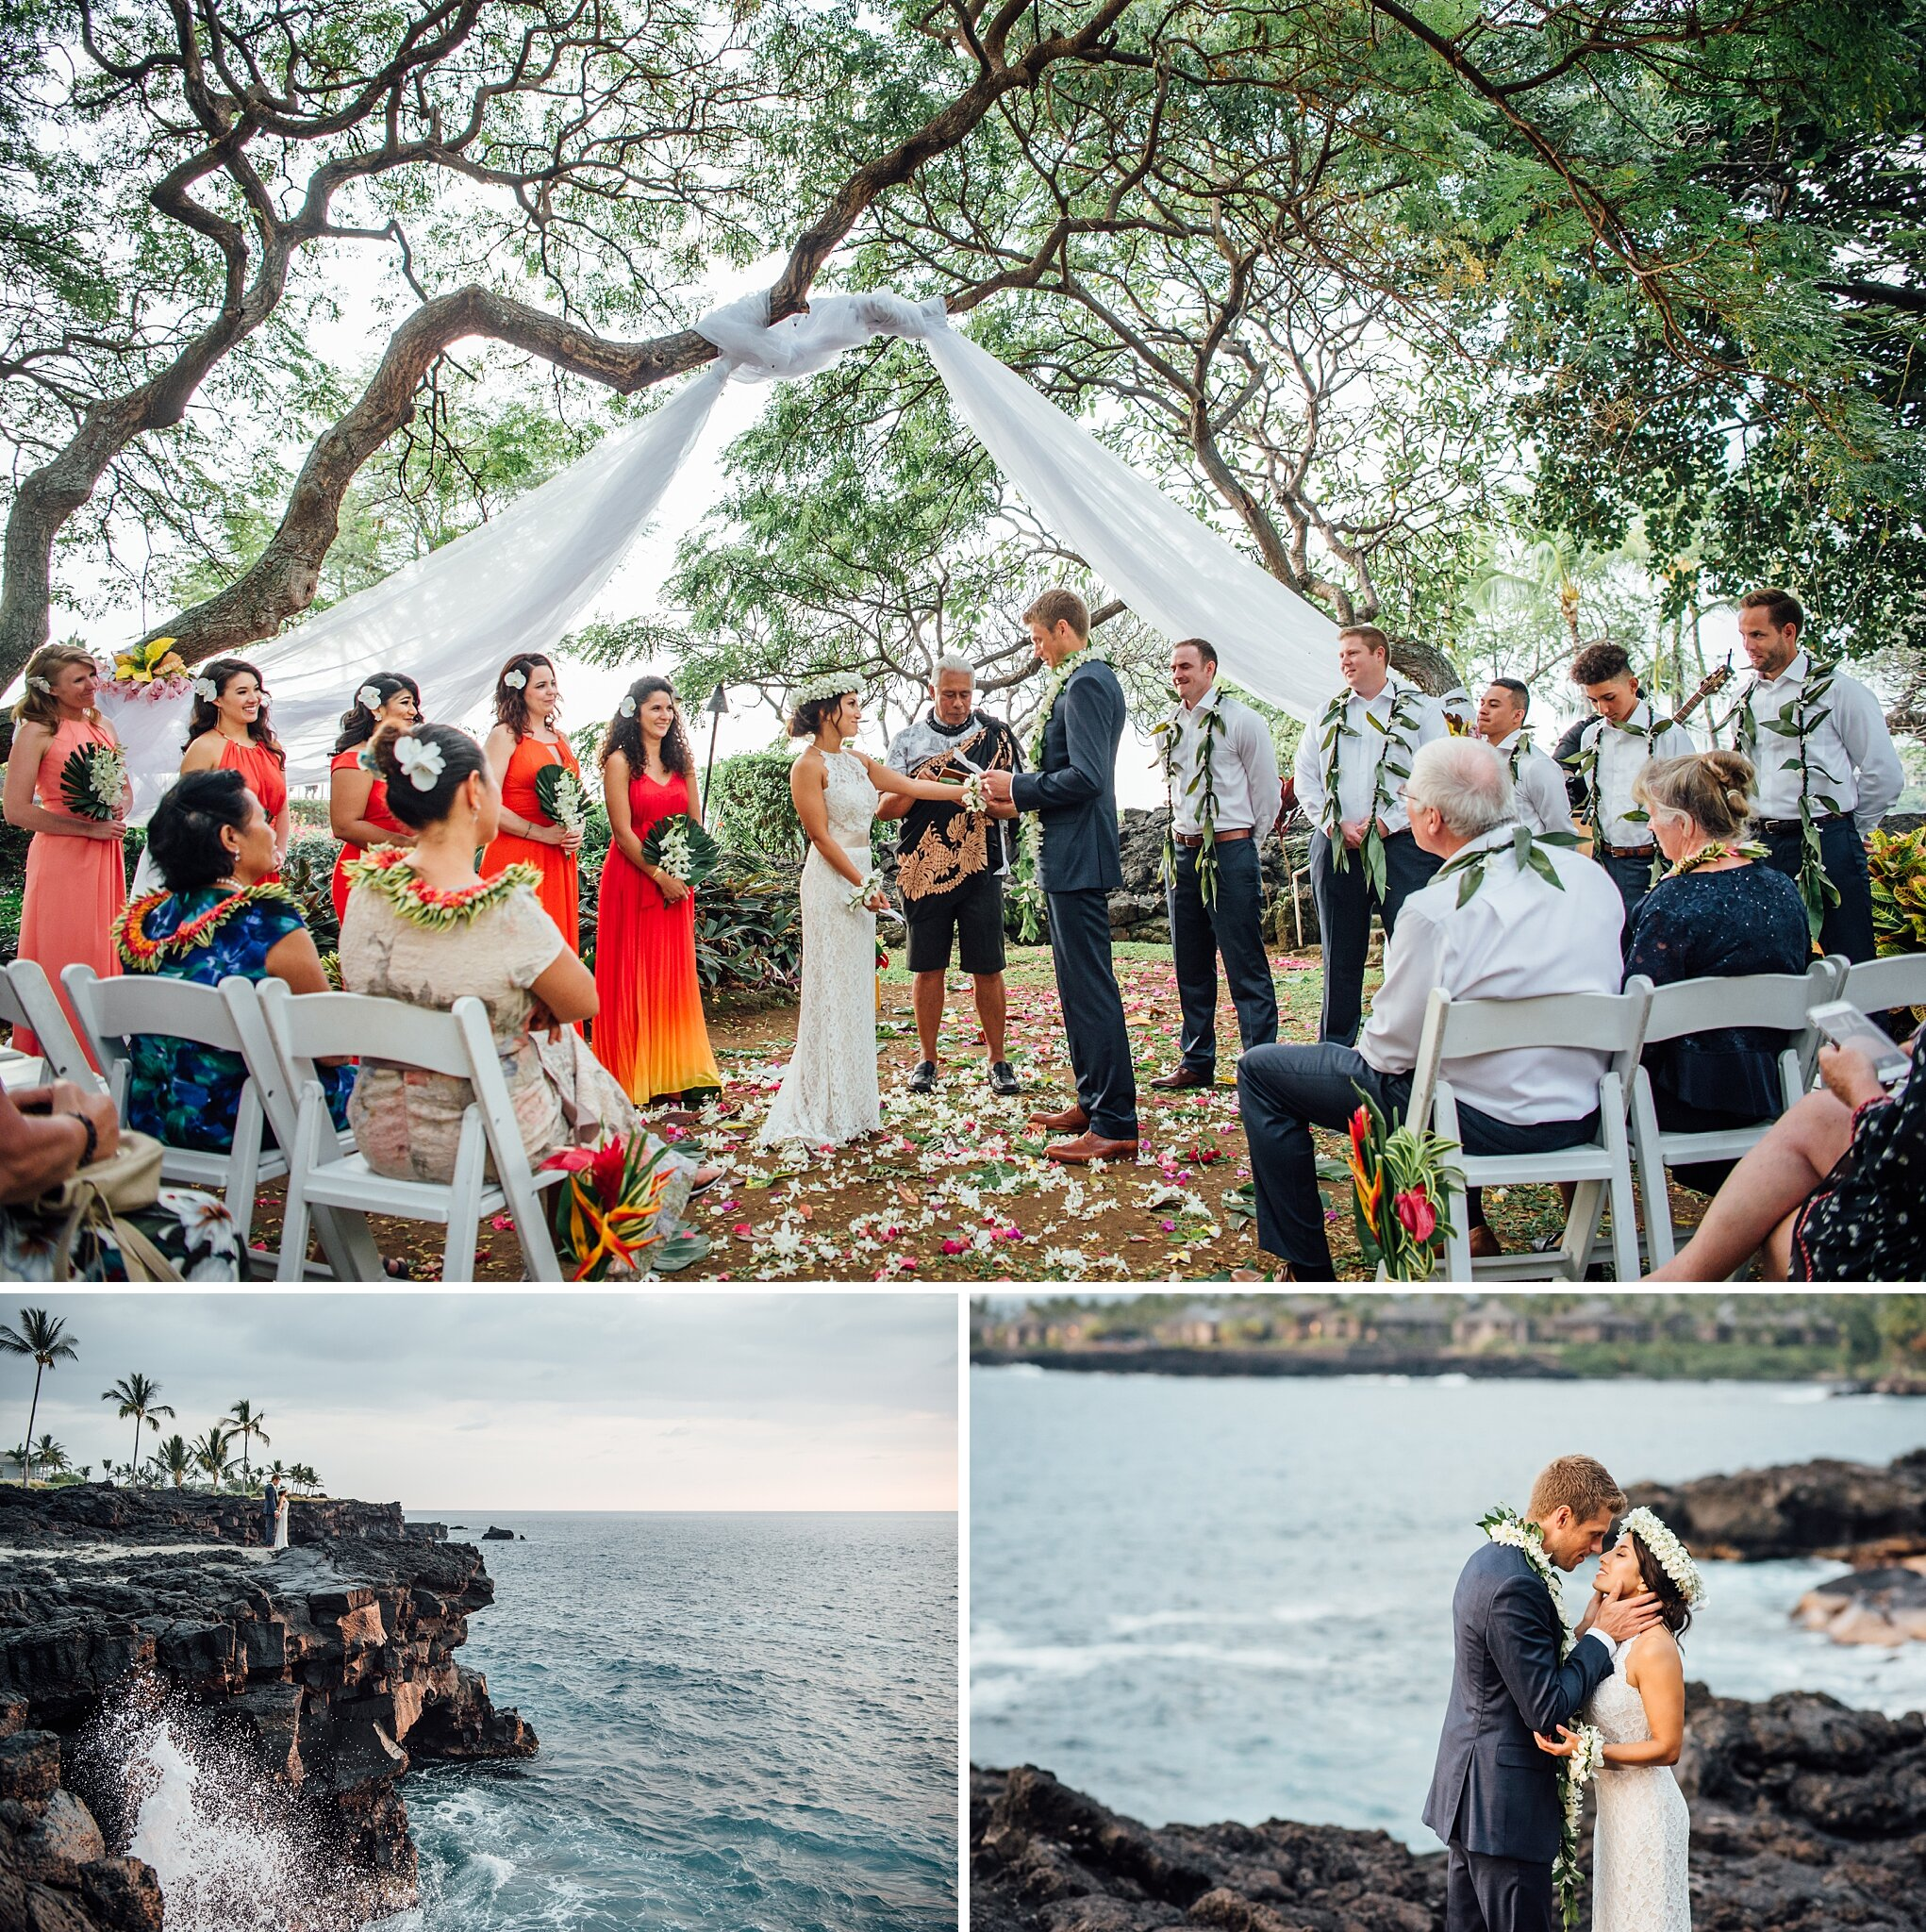 Big Island Wedding Venue at Sheraton Kona captured by Ann Ferguson Photography